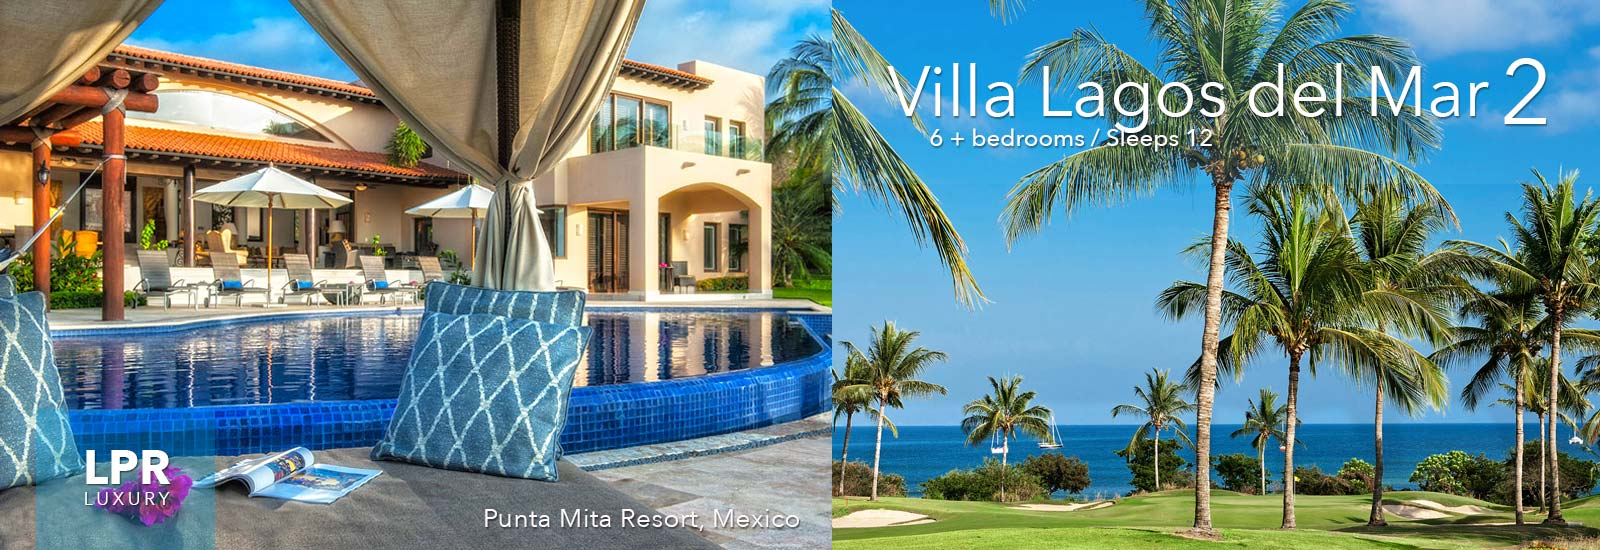 Villa Lagos del Mar 2 - Punta Mita Resort - Mexico Vacation Rentals Real Estate